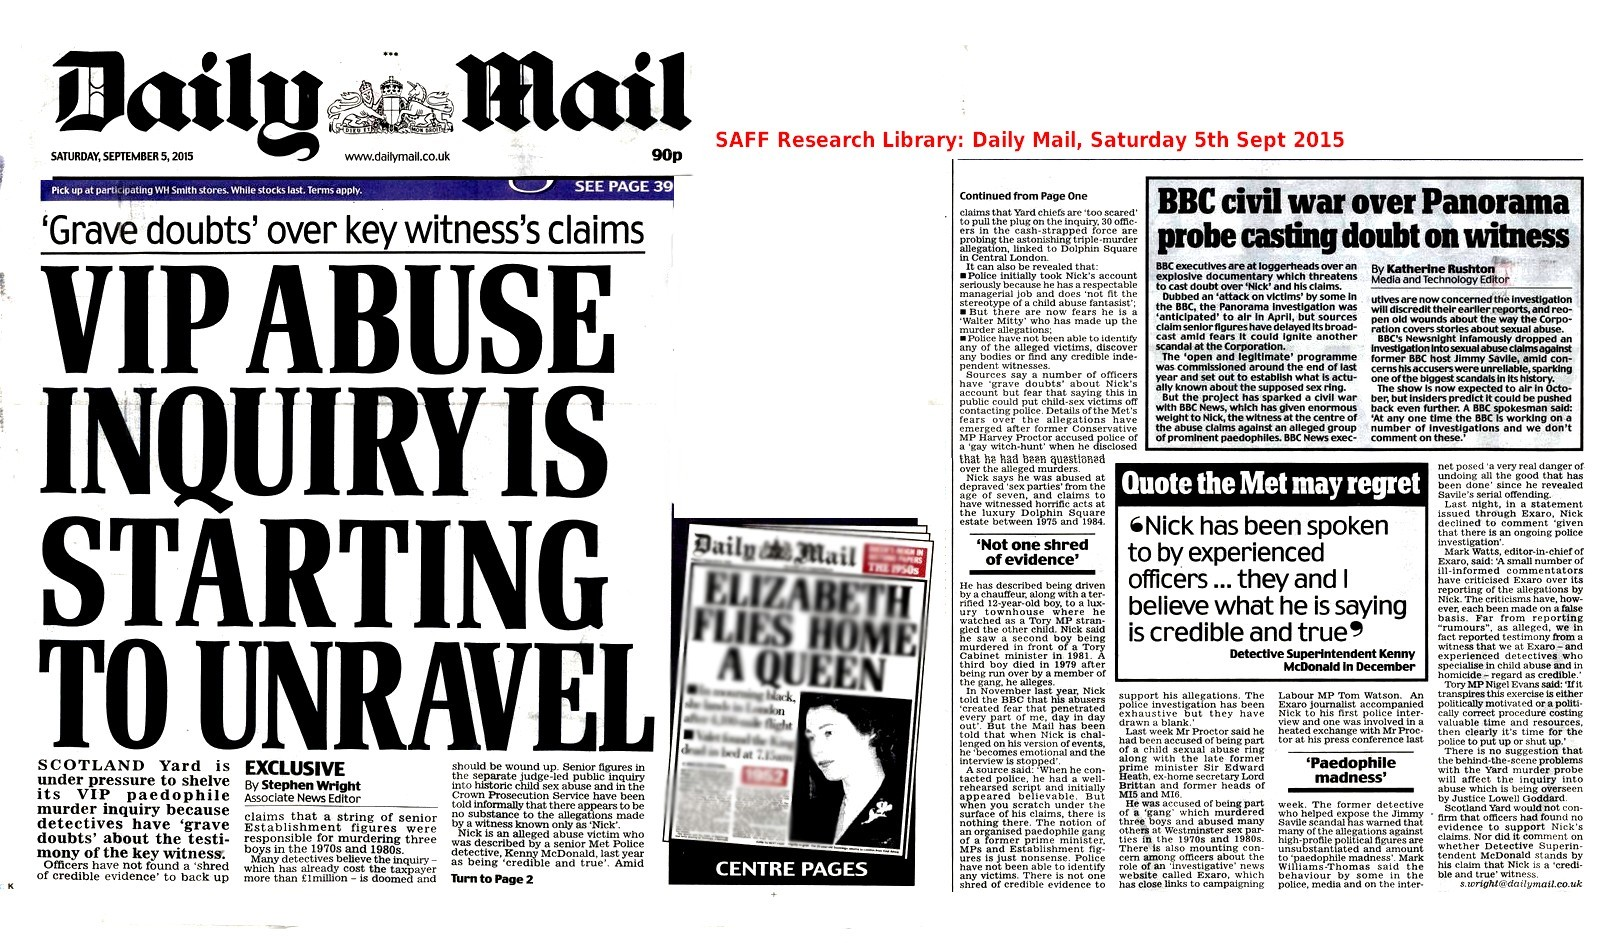 Police report no evidence to substantiate 'Nick's' Westminster Paedo allegations: Daily Mail